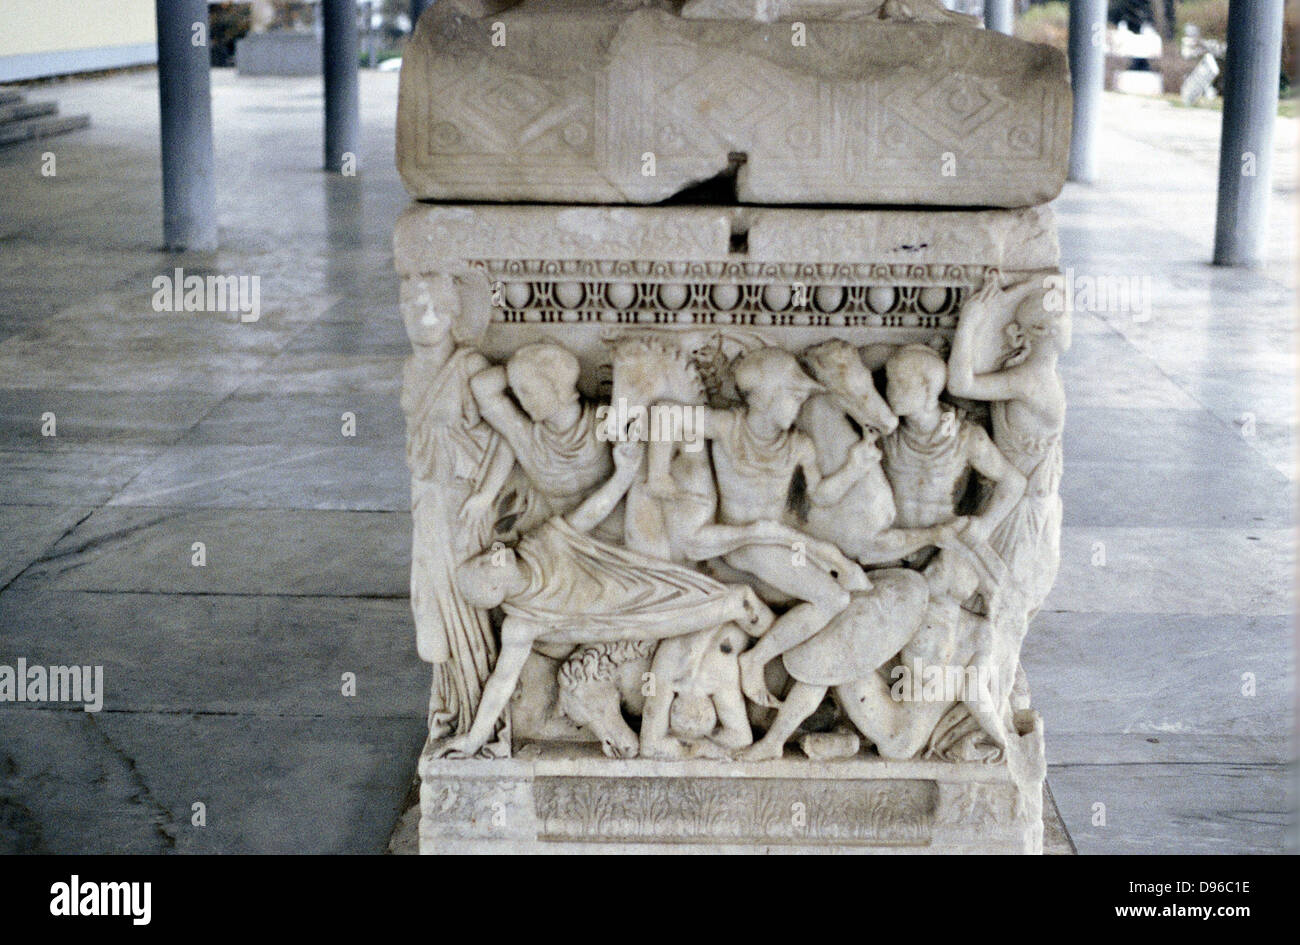 Soldiers in battle. Scene from foot of sarcophagus c300 BC. Thessaloniki Museum - Stock Image